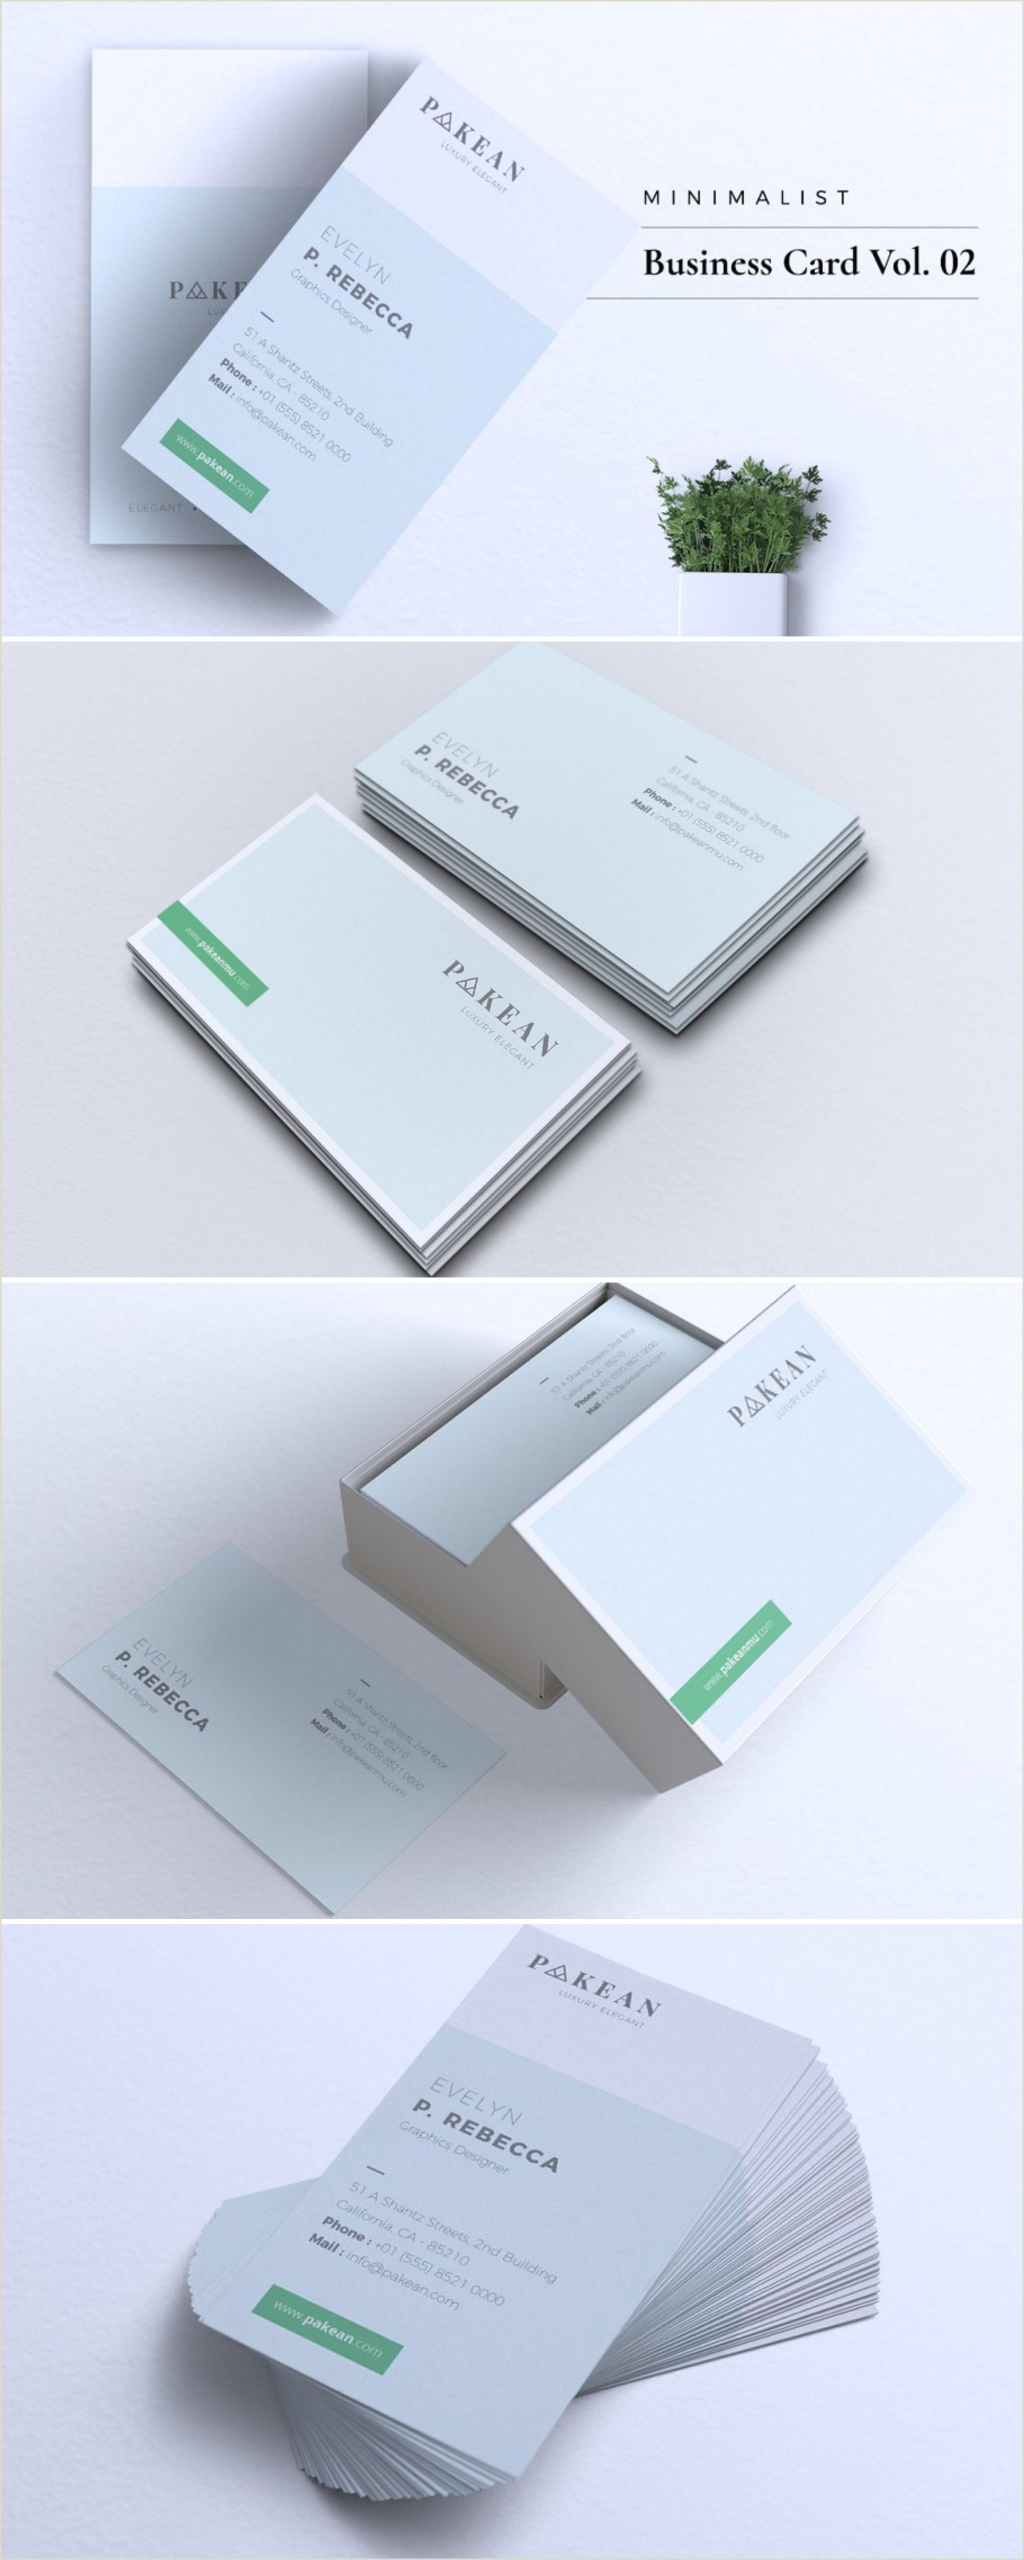 Unique Way To Organize Business Cards Minimalist Business Card Vol 02